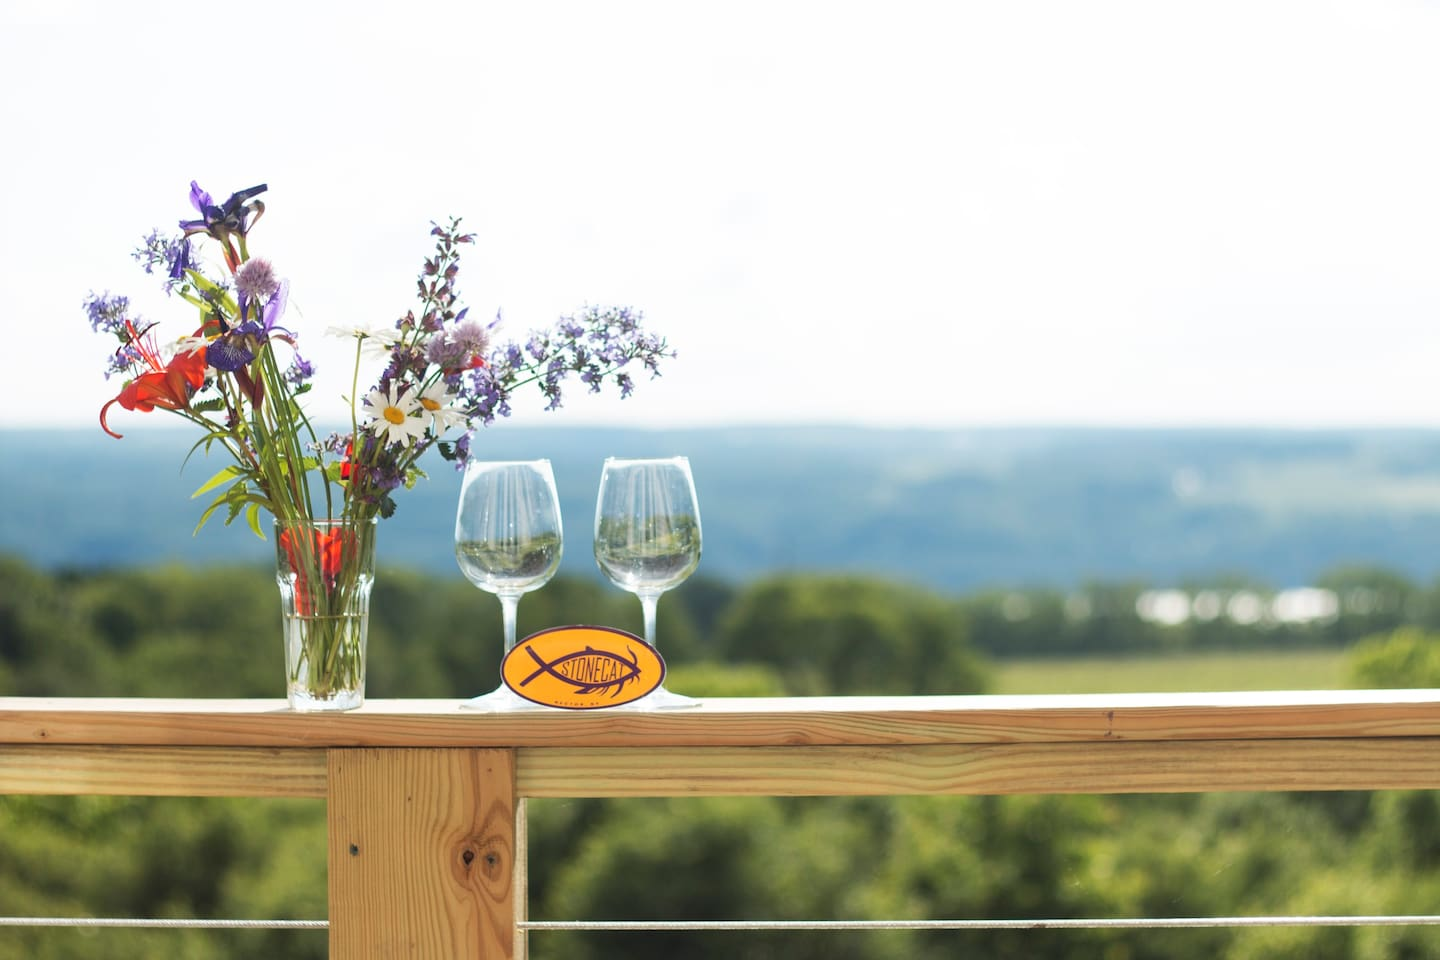 Stunning vineyard views from your own private balcony.